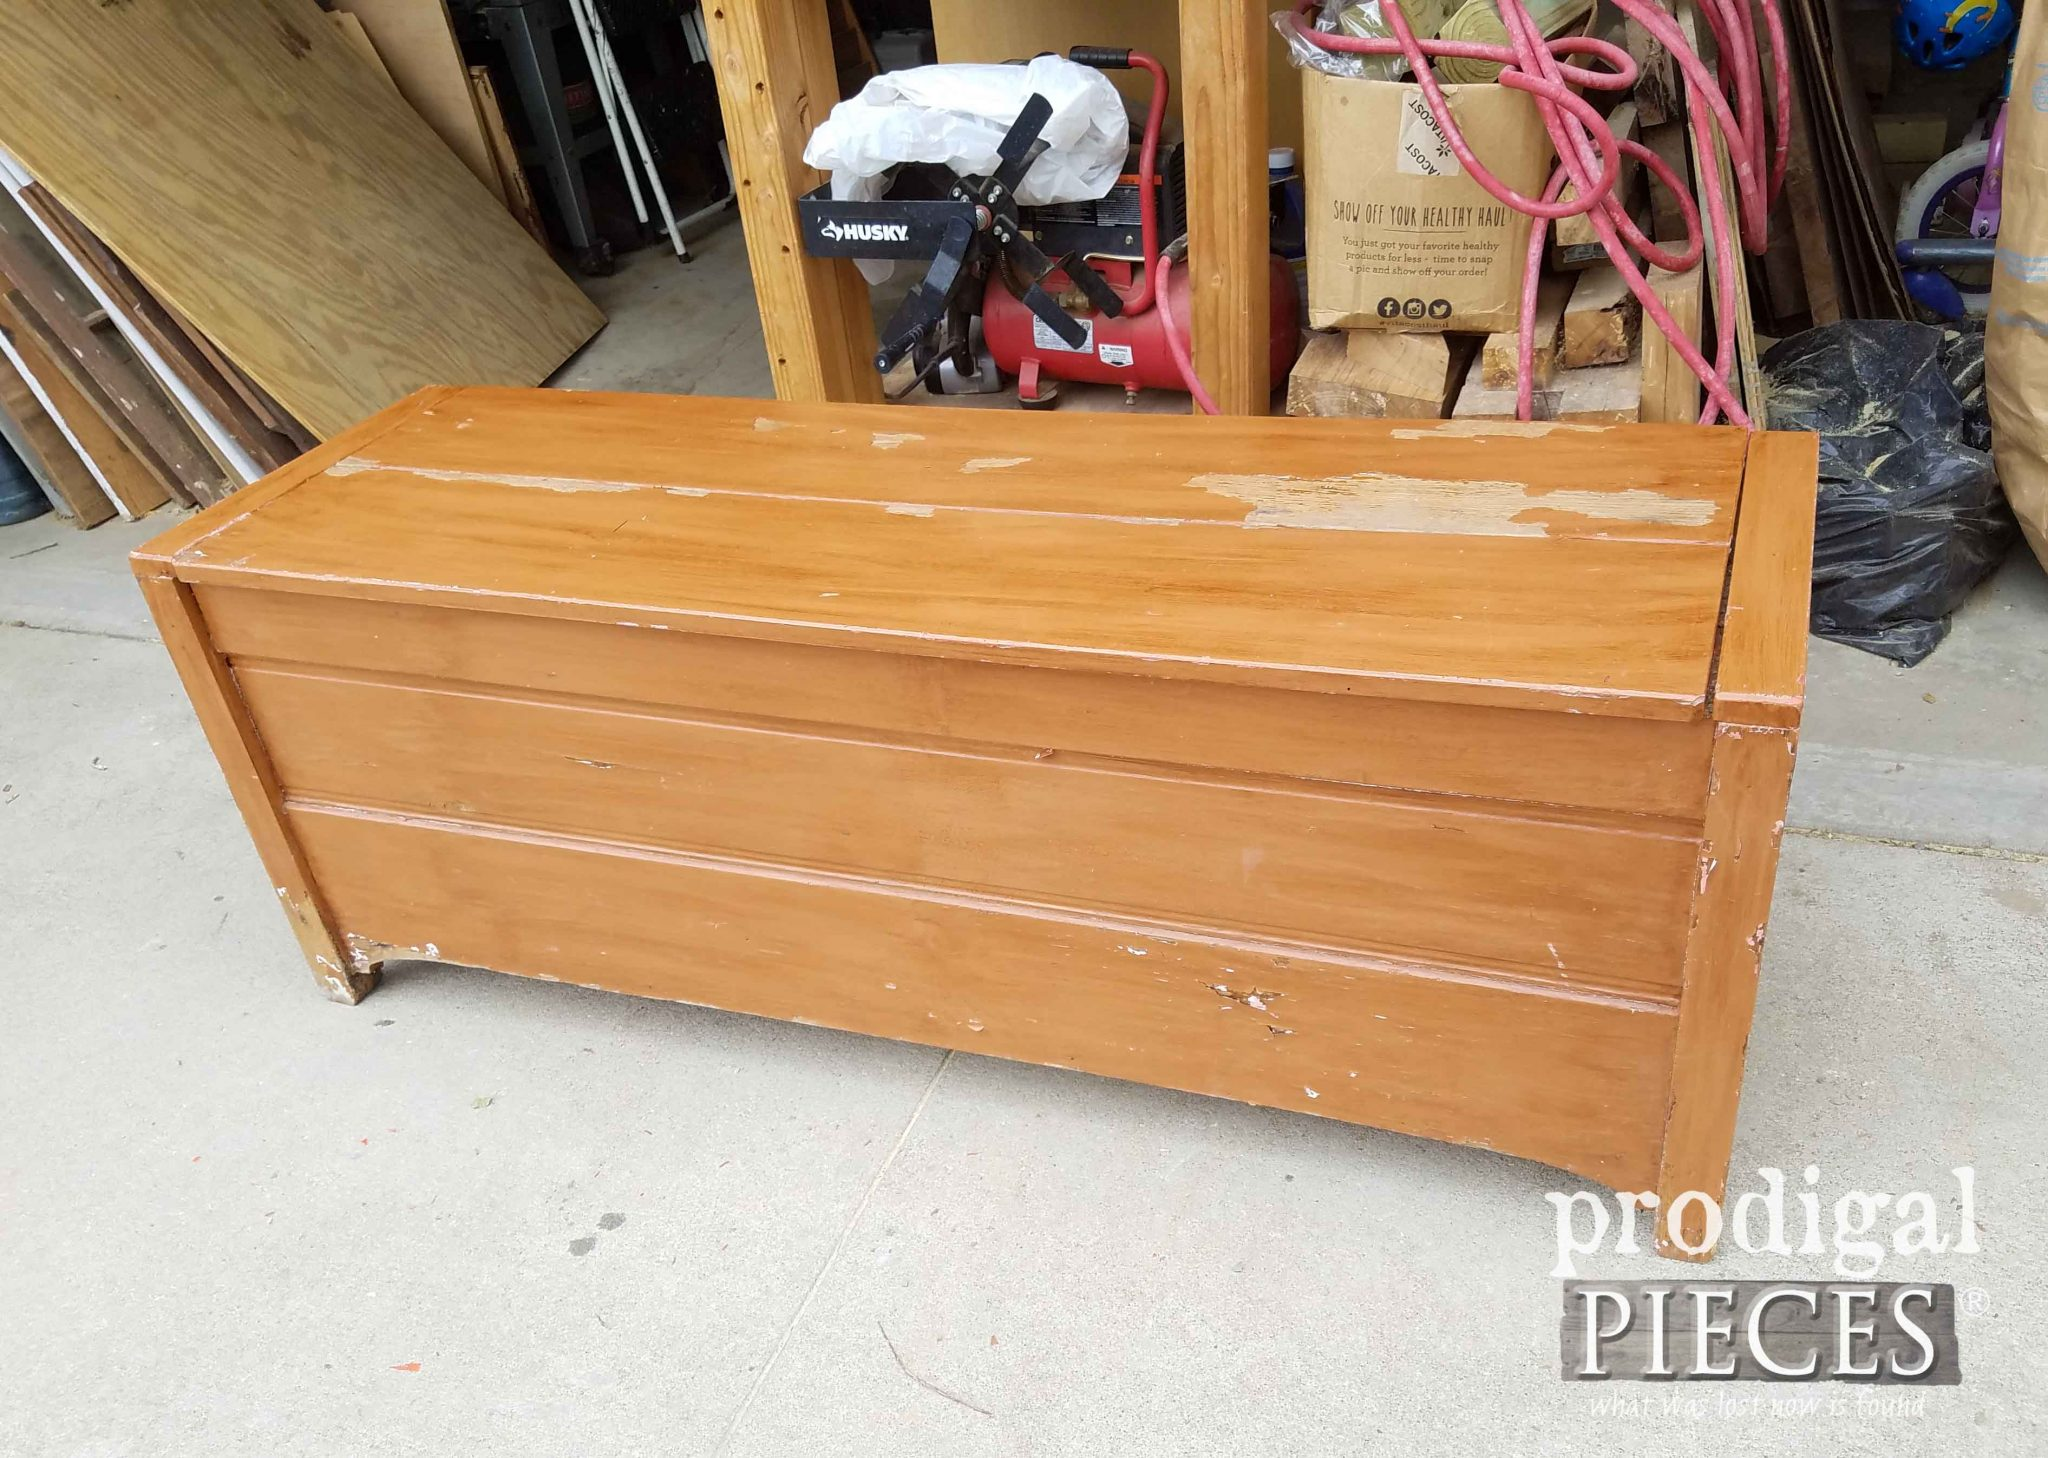 Painted Blanket Chest Before Makeover | prodigalpieces.com